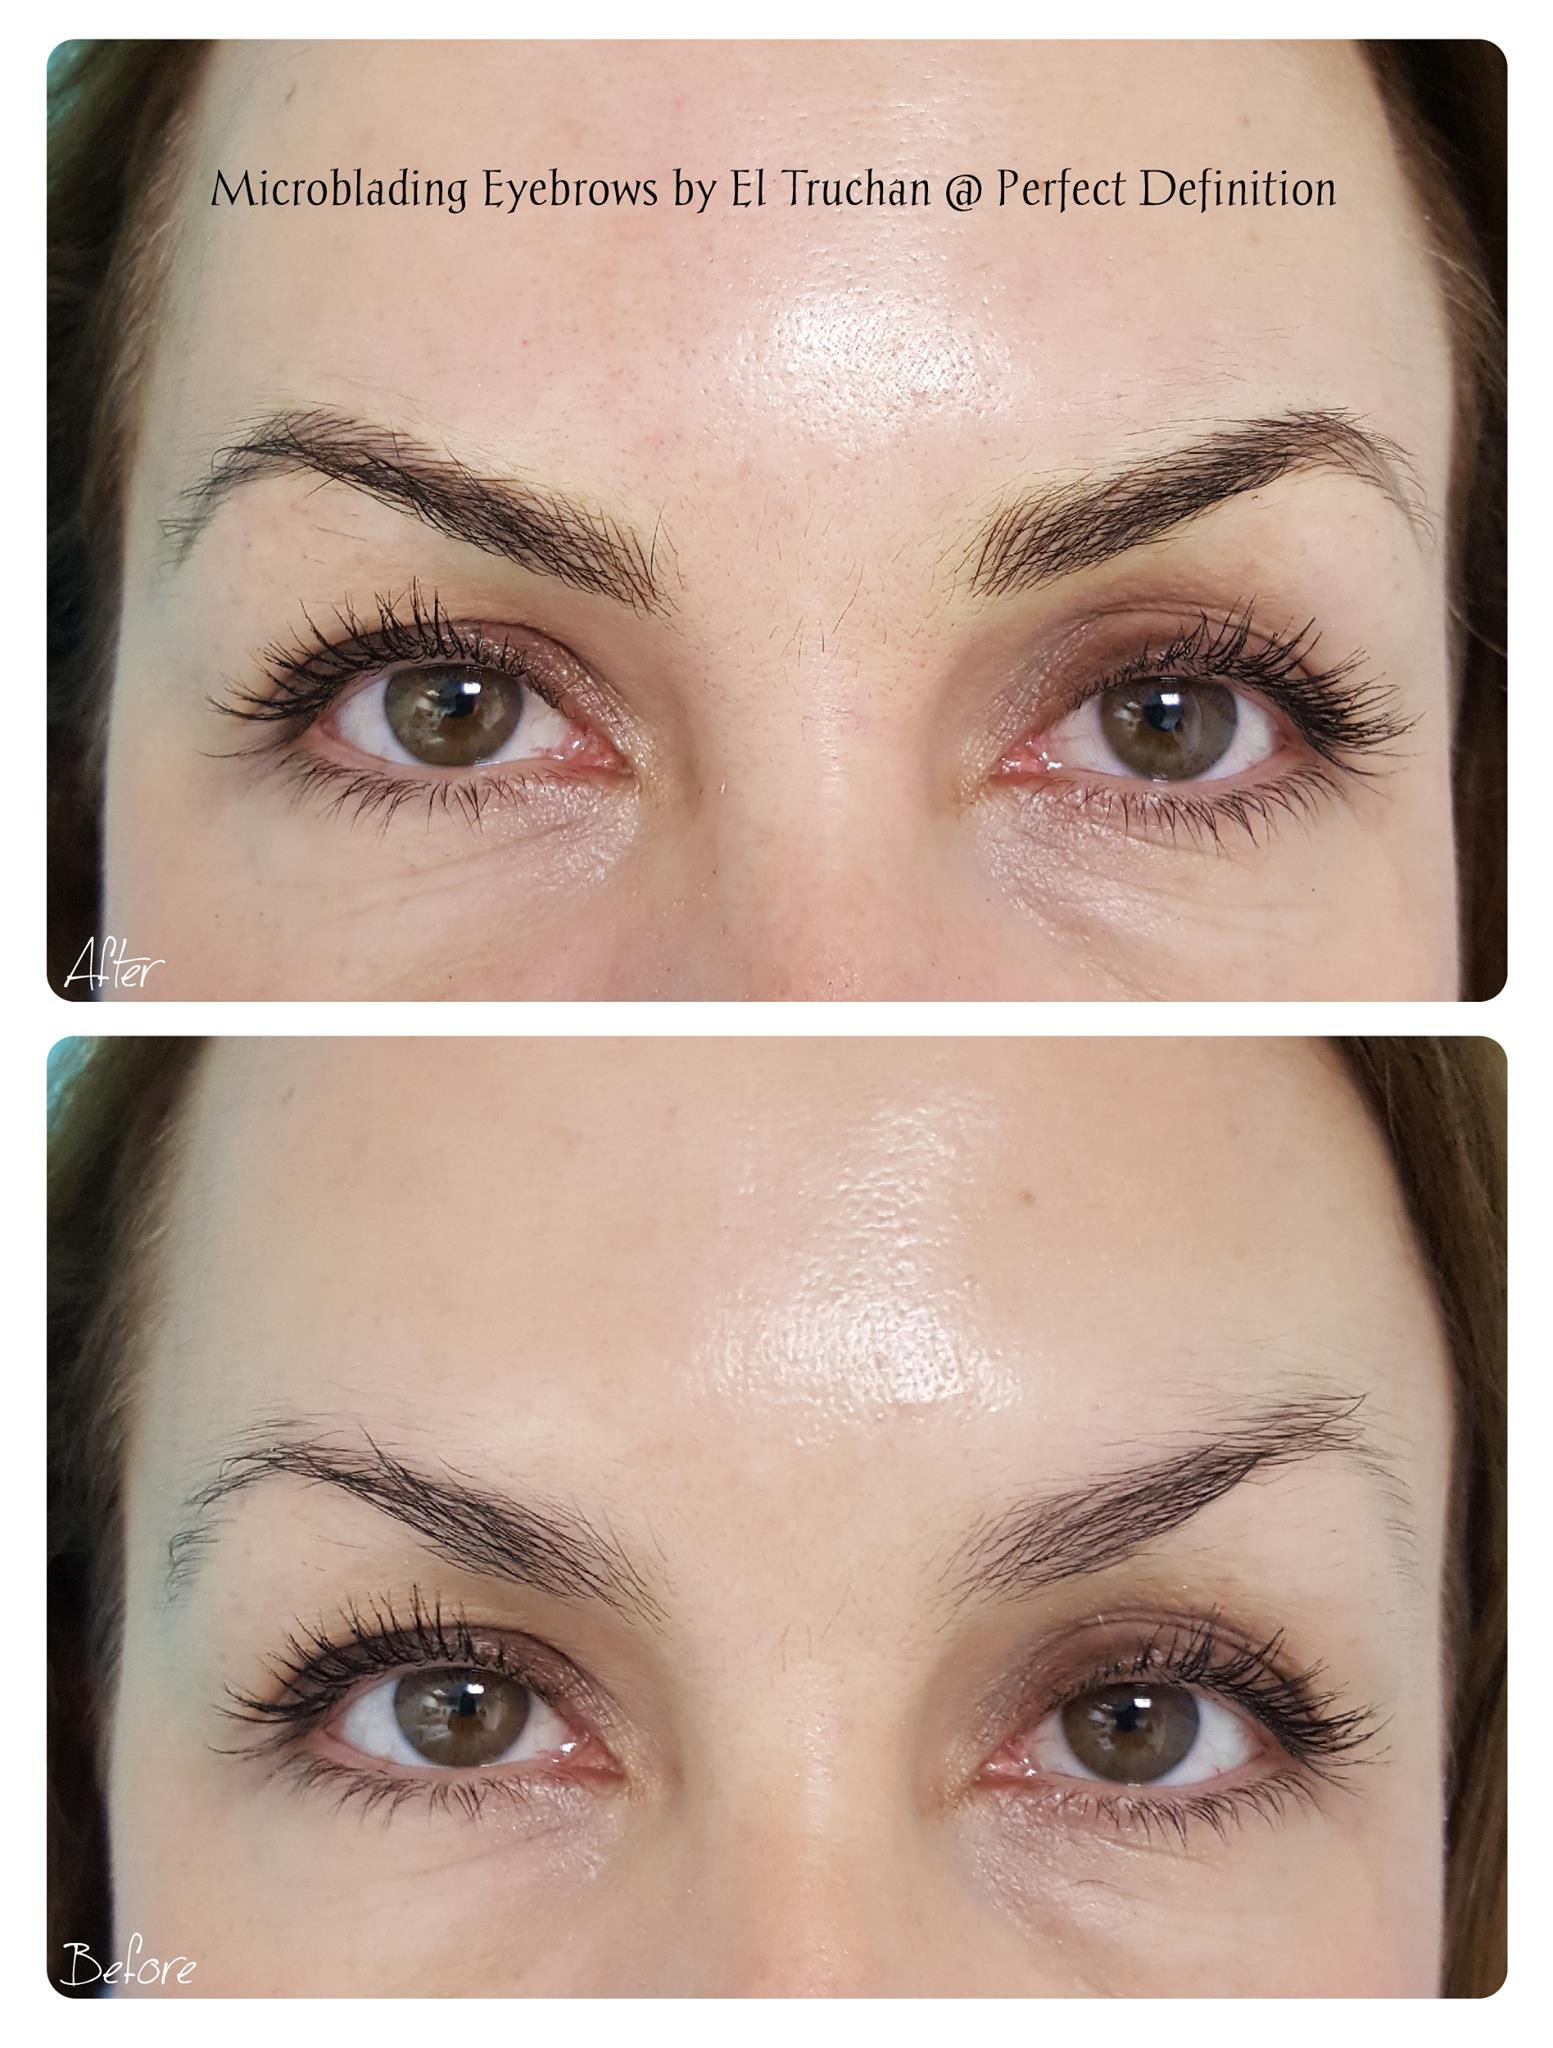 Microblading Eyebrows by El Truchan